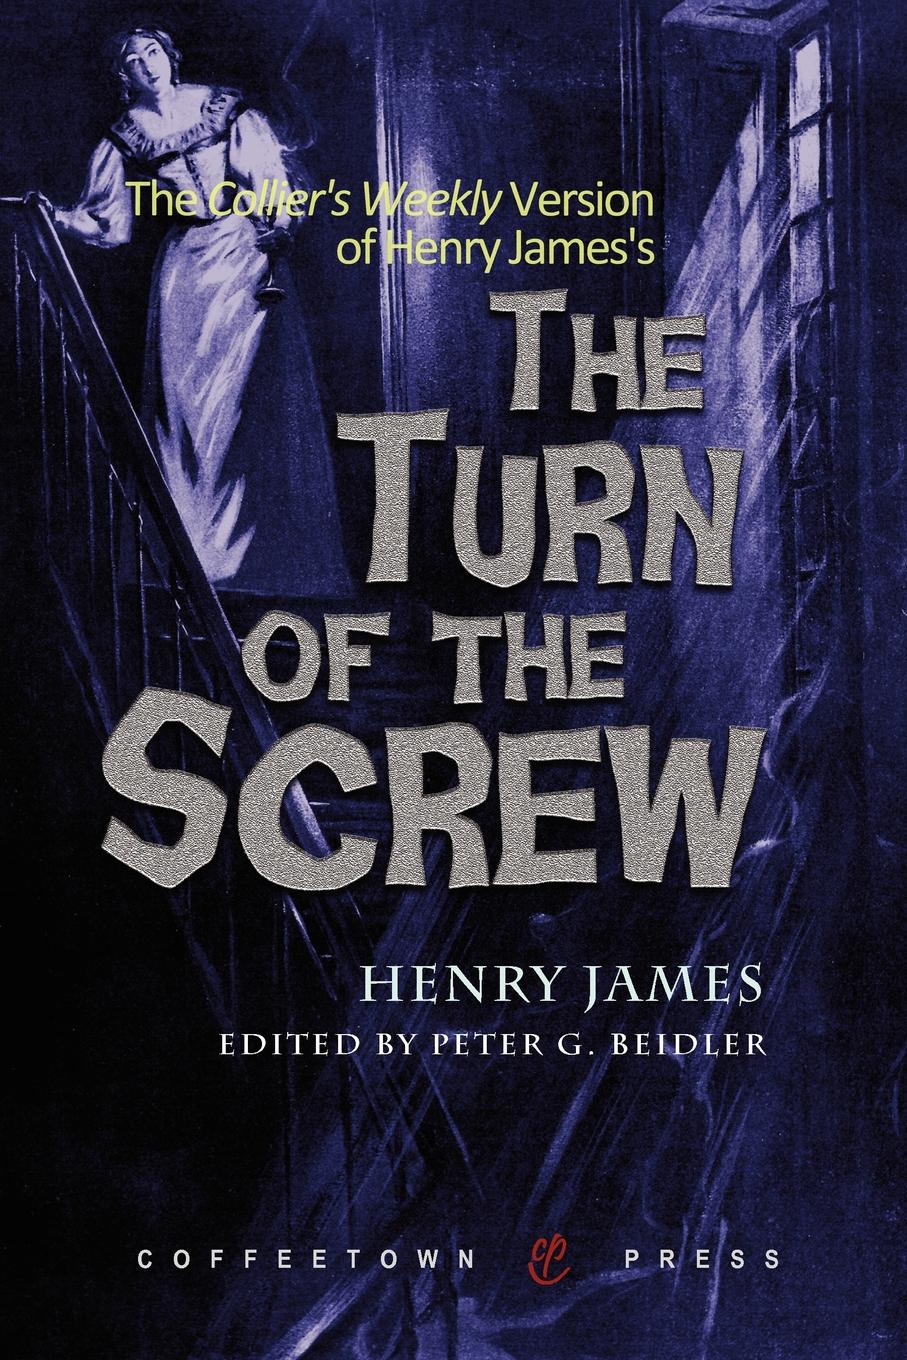 Henry James The Collier's Weekly Version of the Turn of the Screw felix j palma the map of time and the turn of the screw